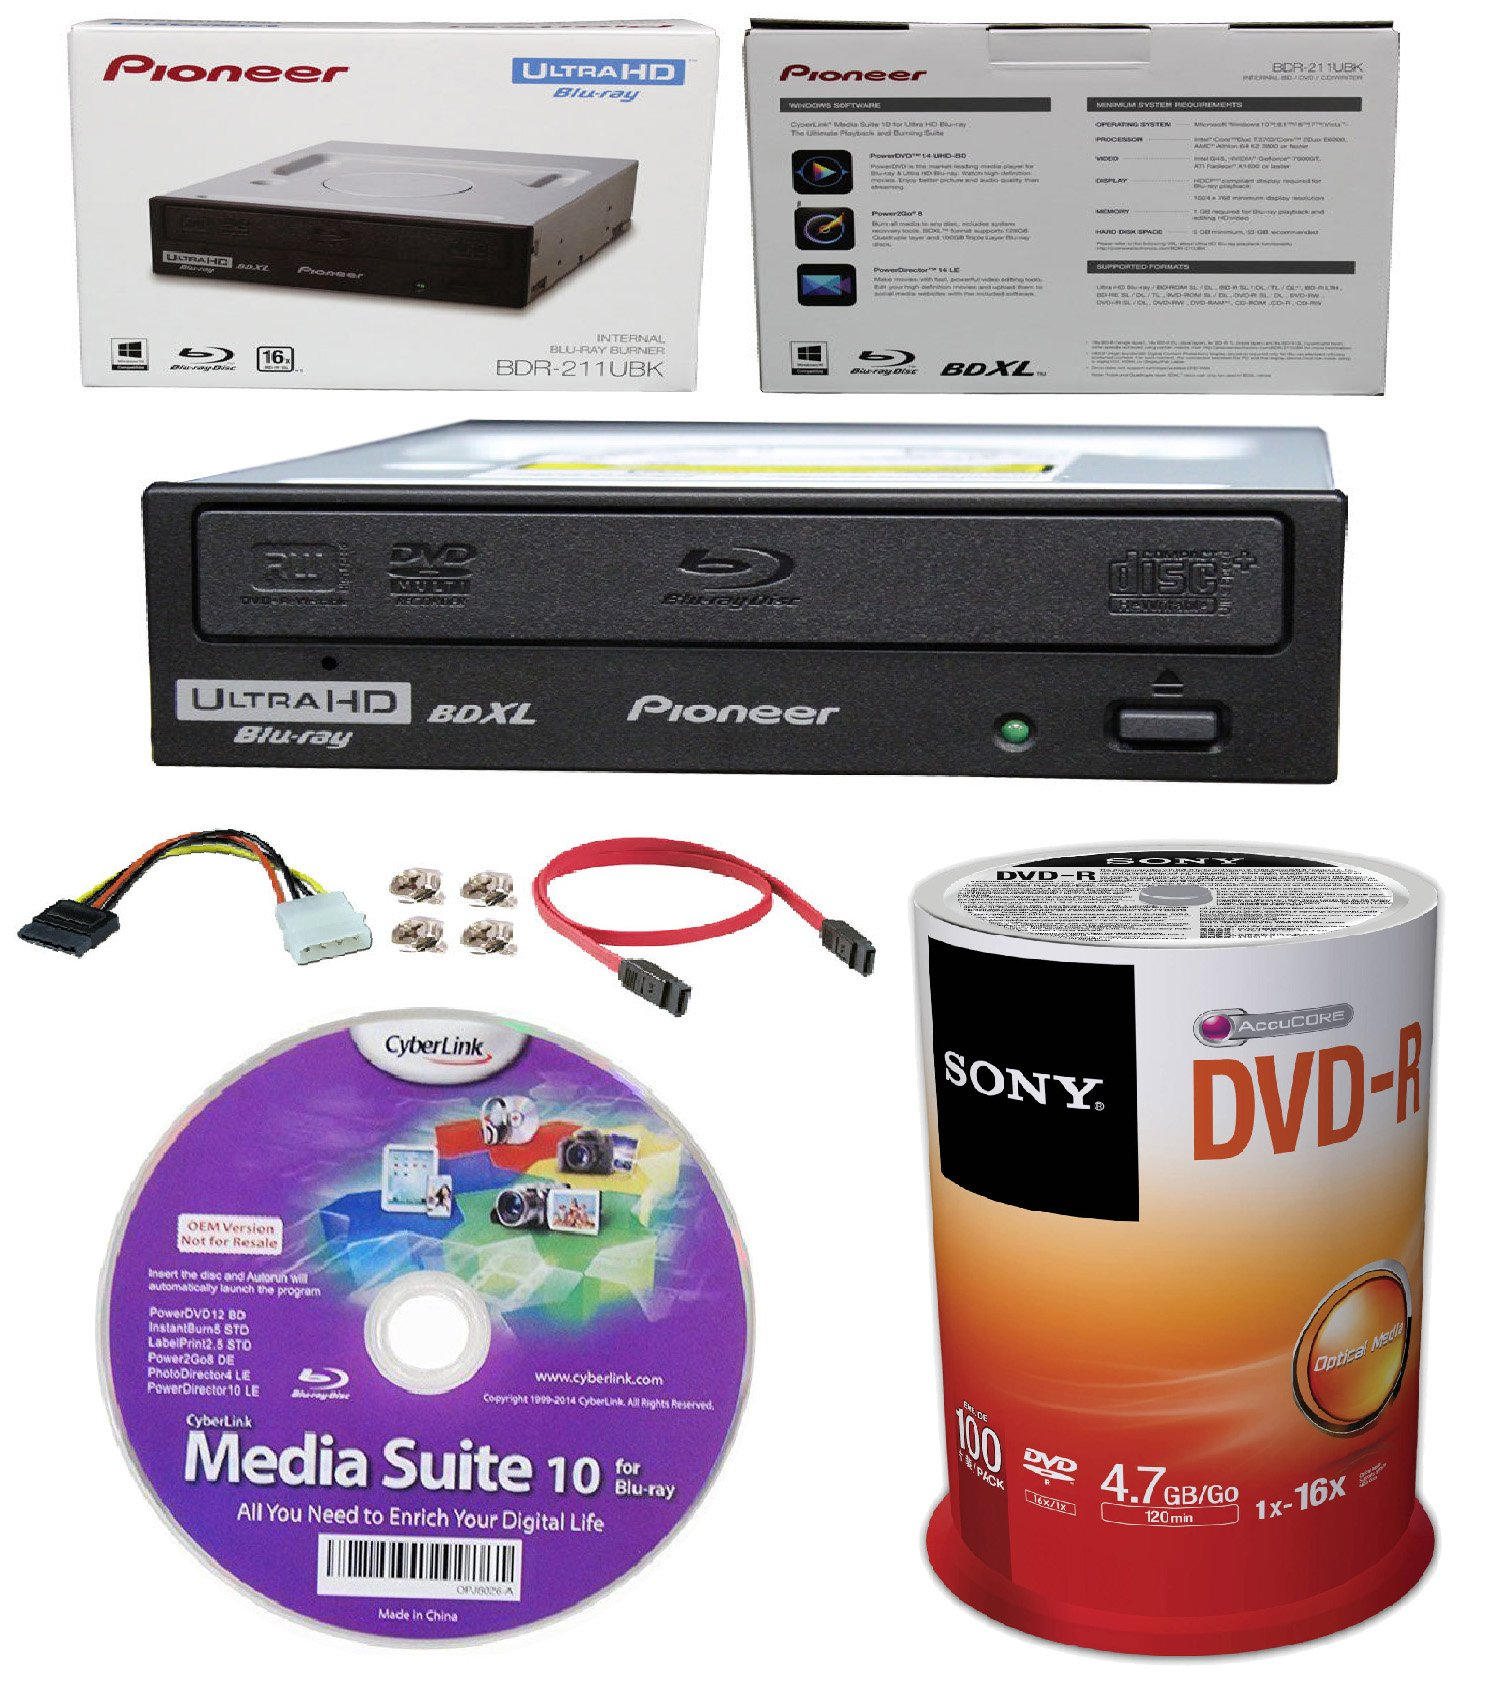 Pioneer 16x BDR-211UBK Internal Ultra HD Blu-ray BDXL Burner, Cyberlink Software and Cable Accessories Bundle with 100pk DVD-R Sony Accucore 4.7GB 16X Recordable Media by Produplicator